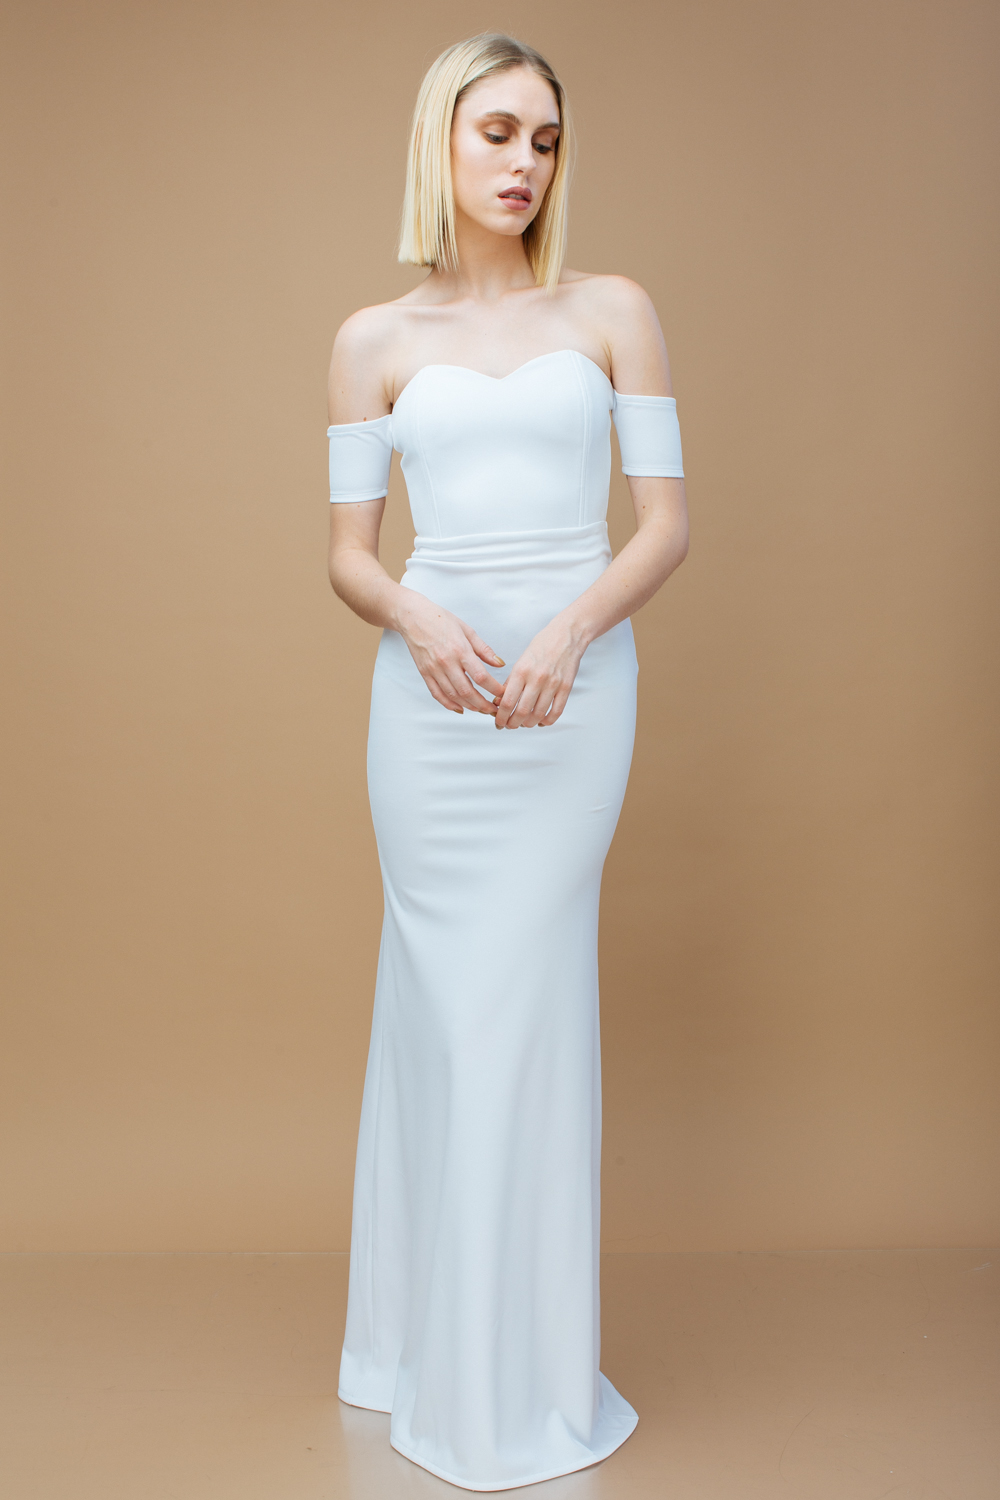 15967d67baba BISOUS Sweetheart Cut Off Shoulder Maxi Dress (White)